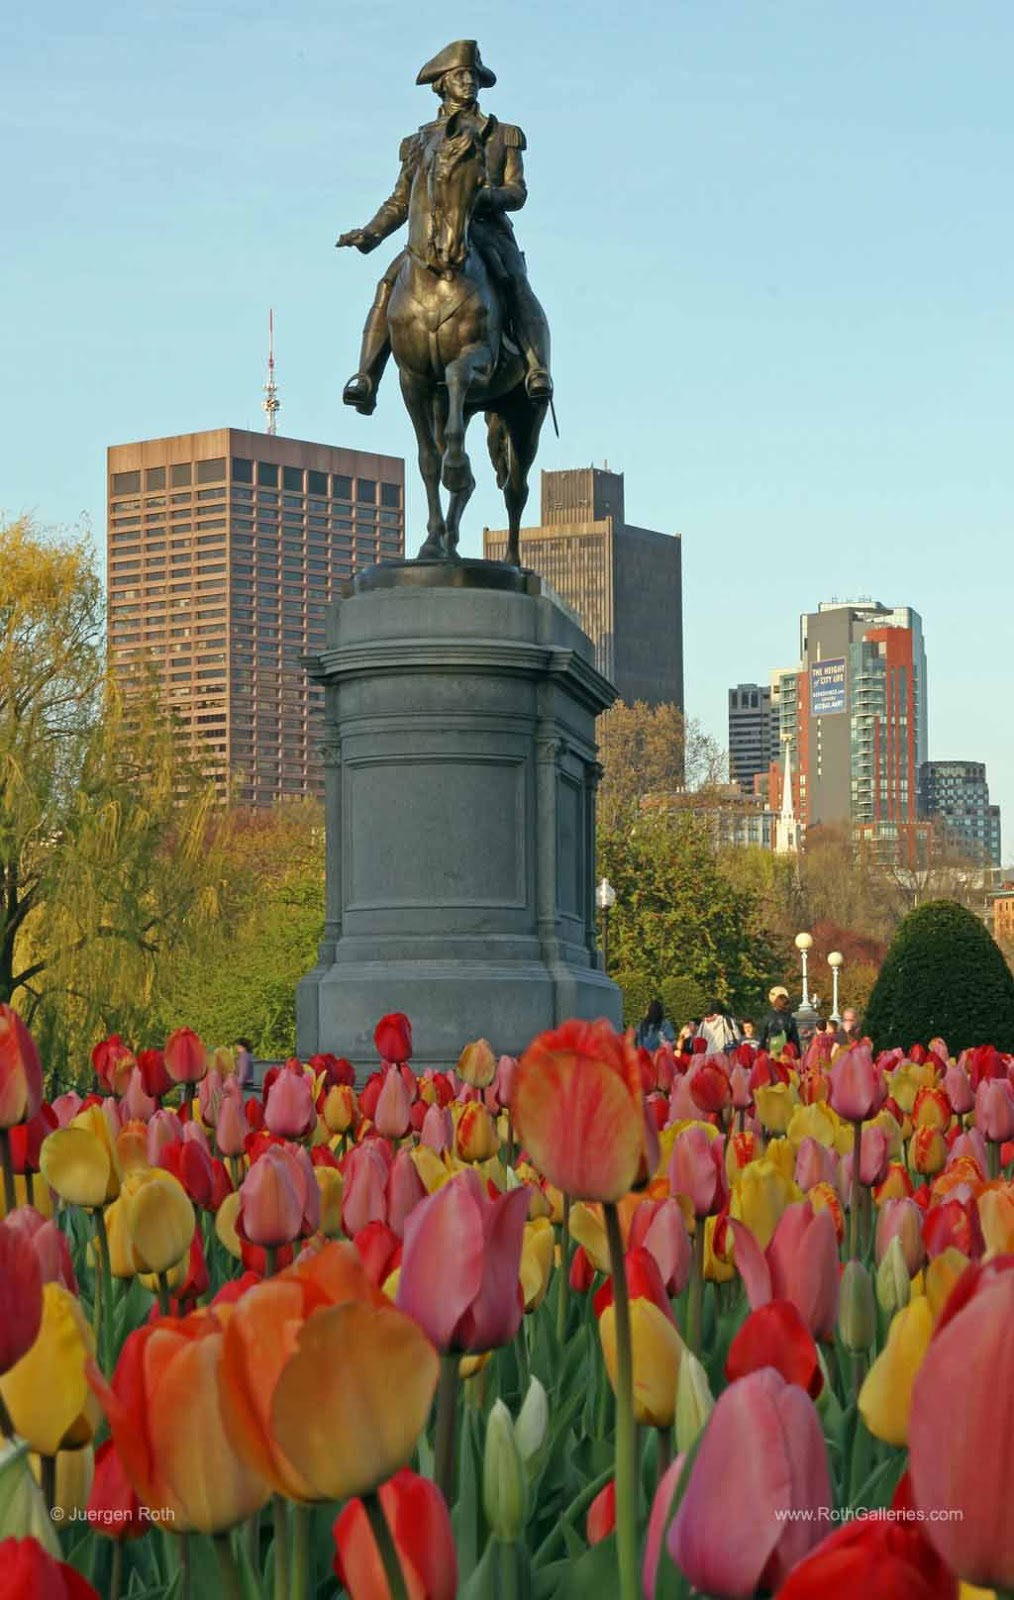 http://juergen-roth.artistwebsites.com/featured/george-washington-at-the-boston-public-garden-juergen-roth.html